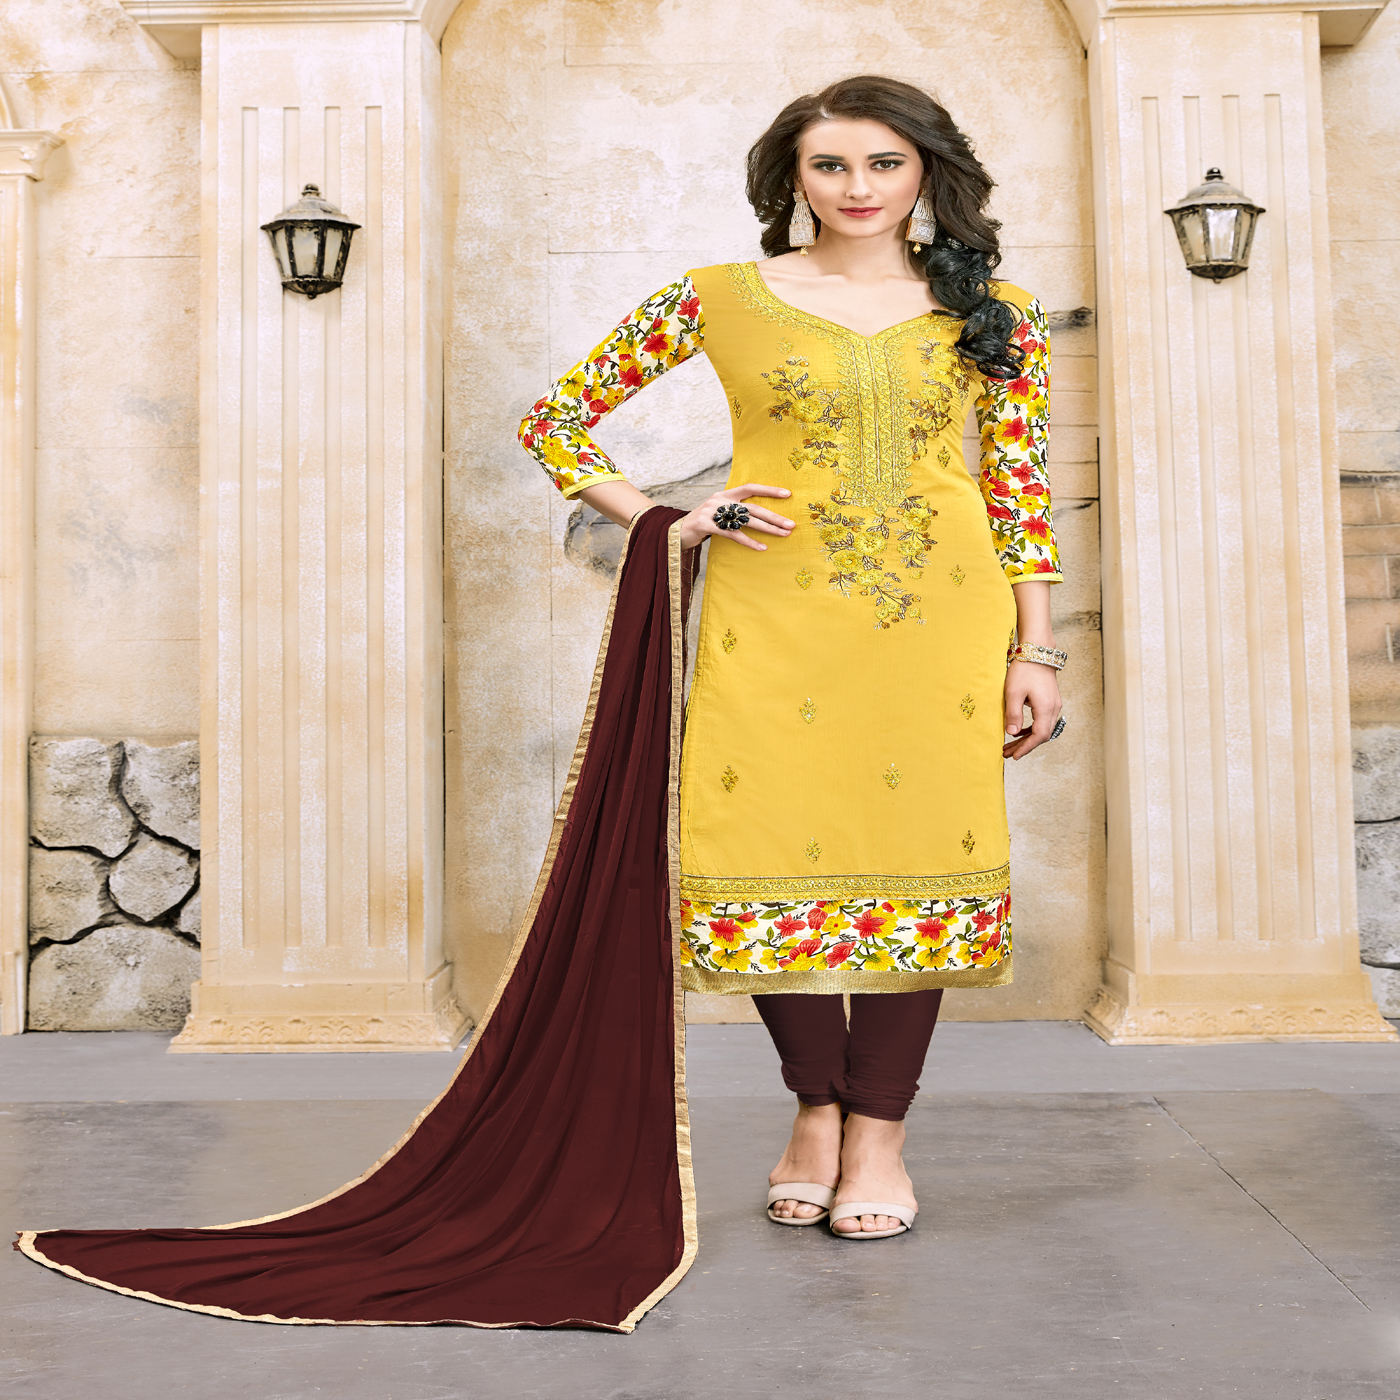 women's daily wear cotton salwar kameez